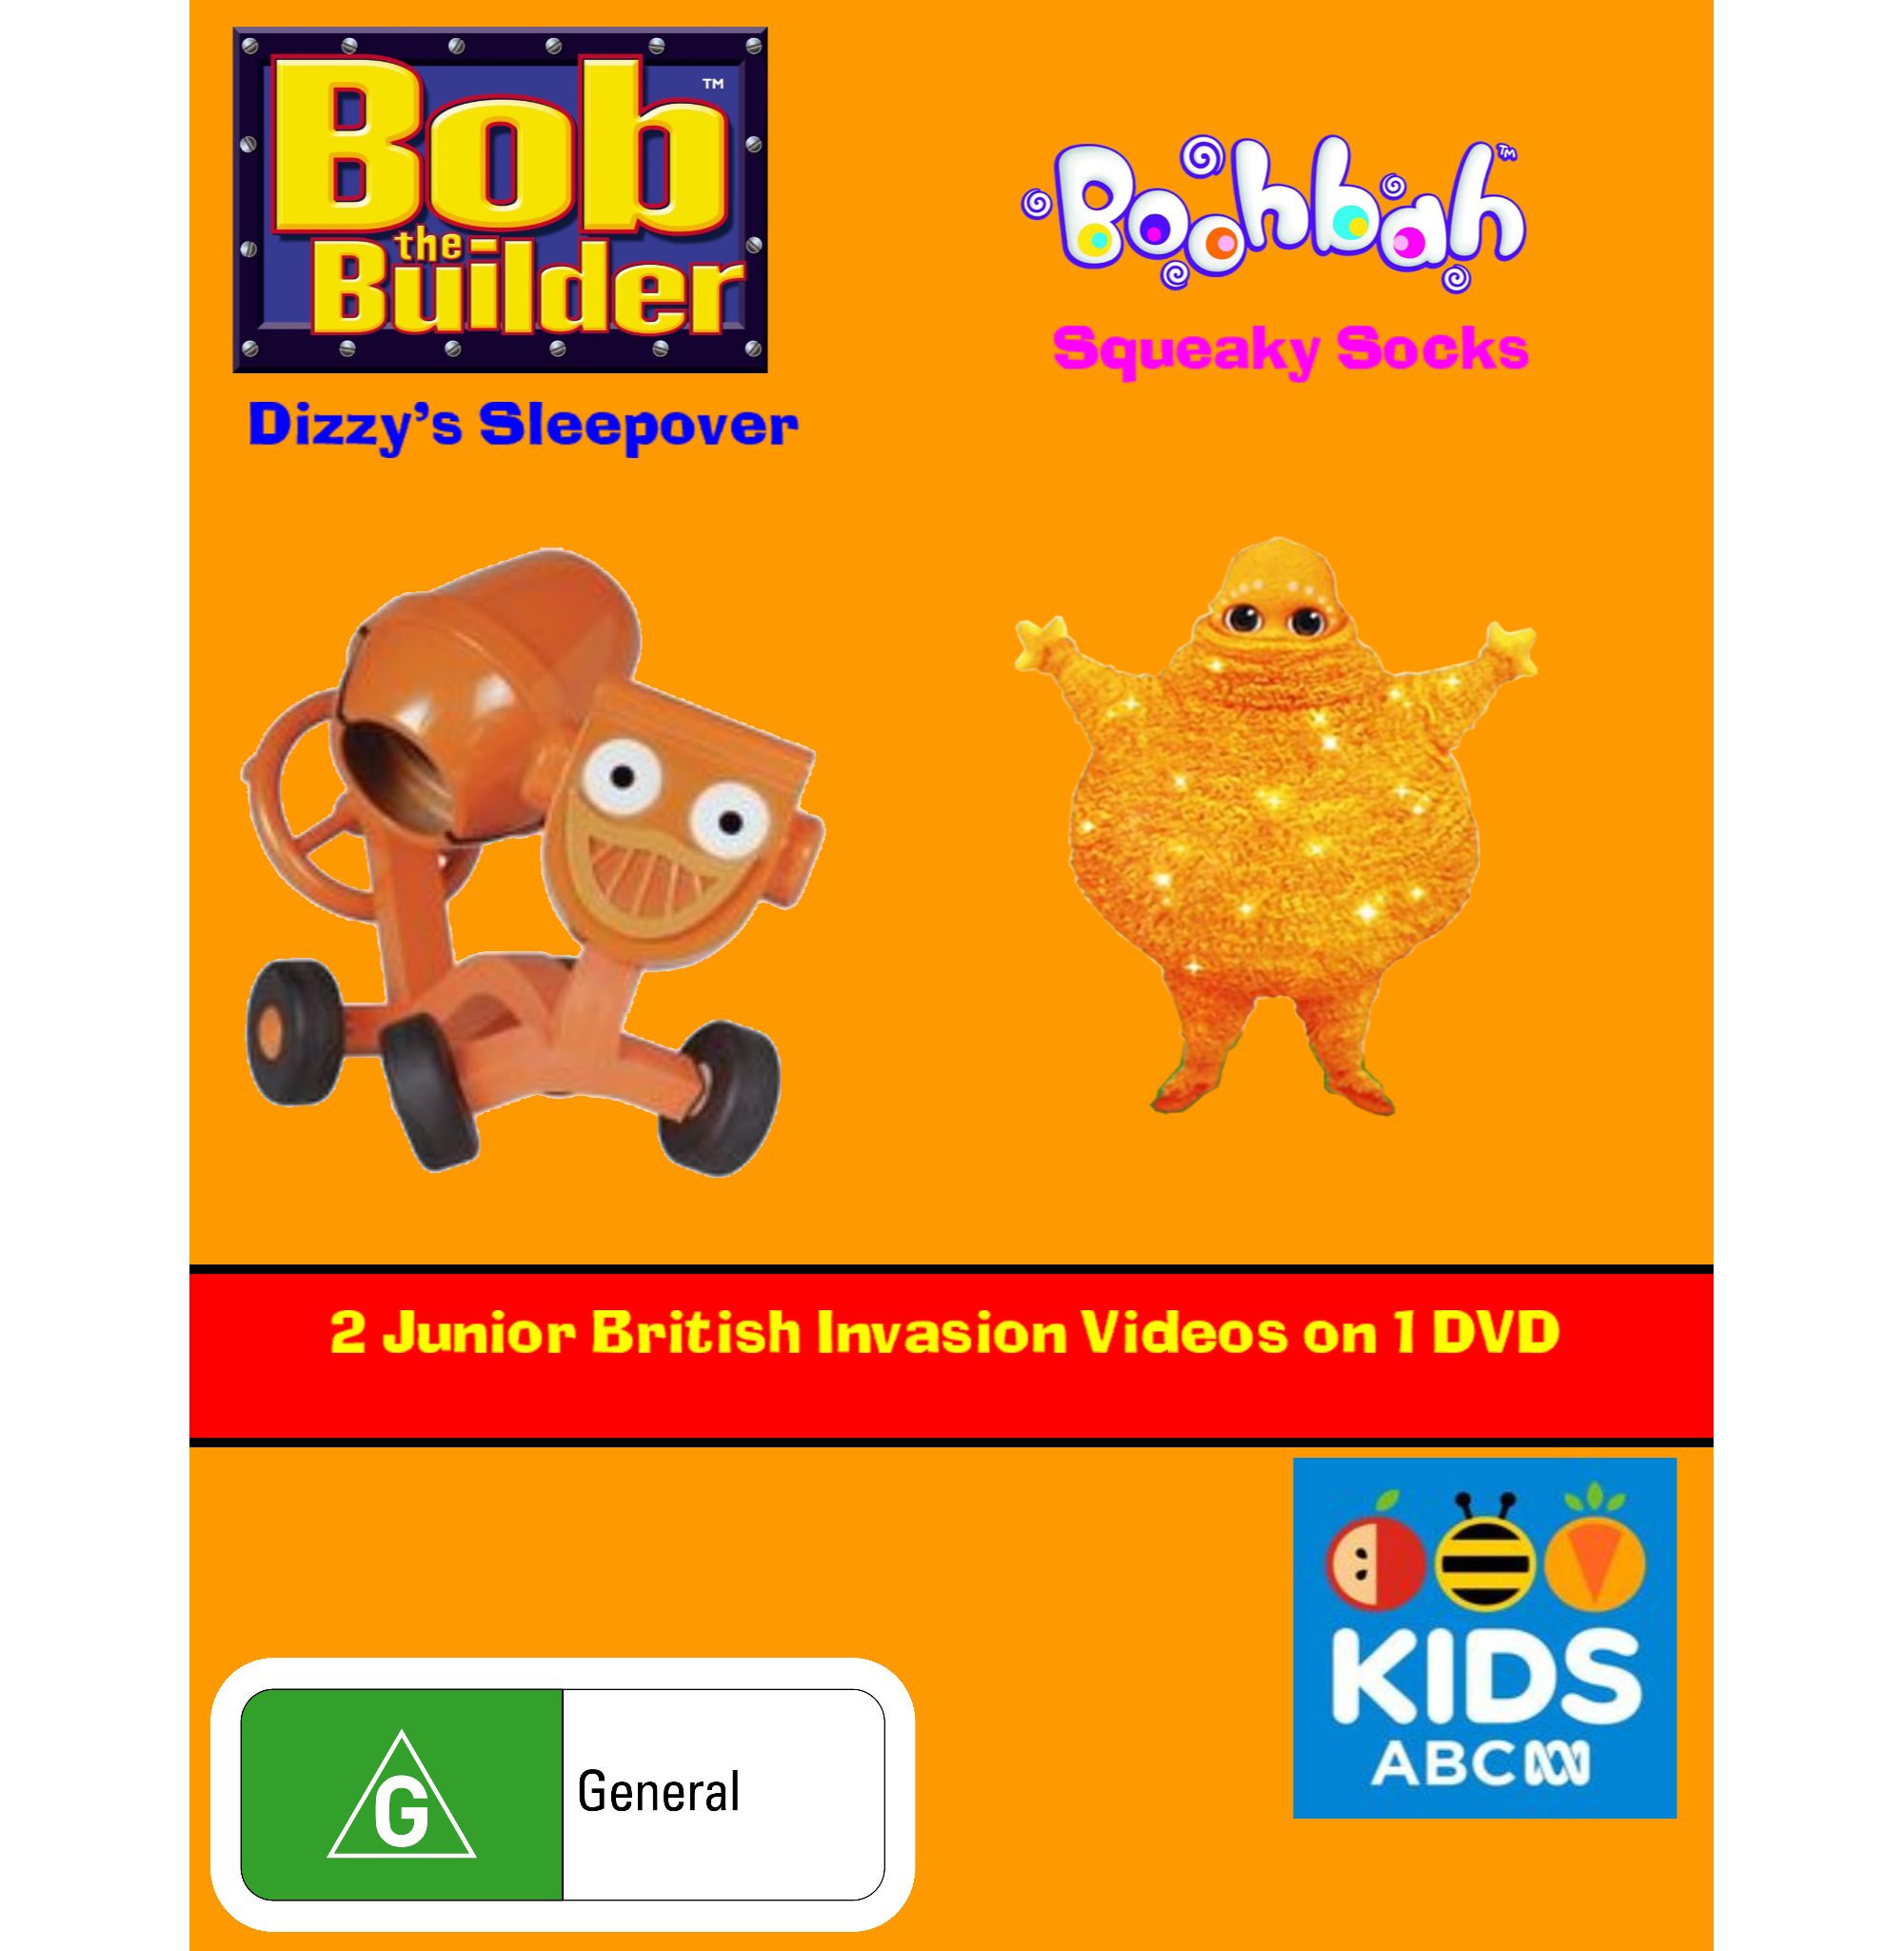 Bob the Builder and Boohbah: Dizzy's Sleepover and Squeaky Socks